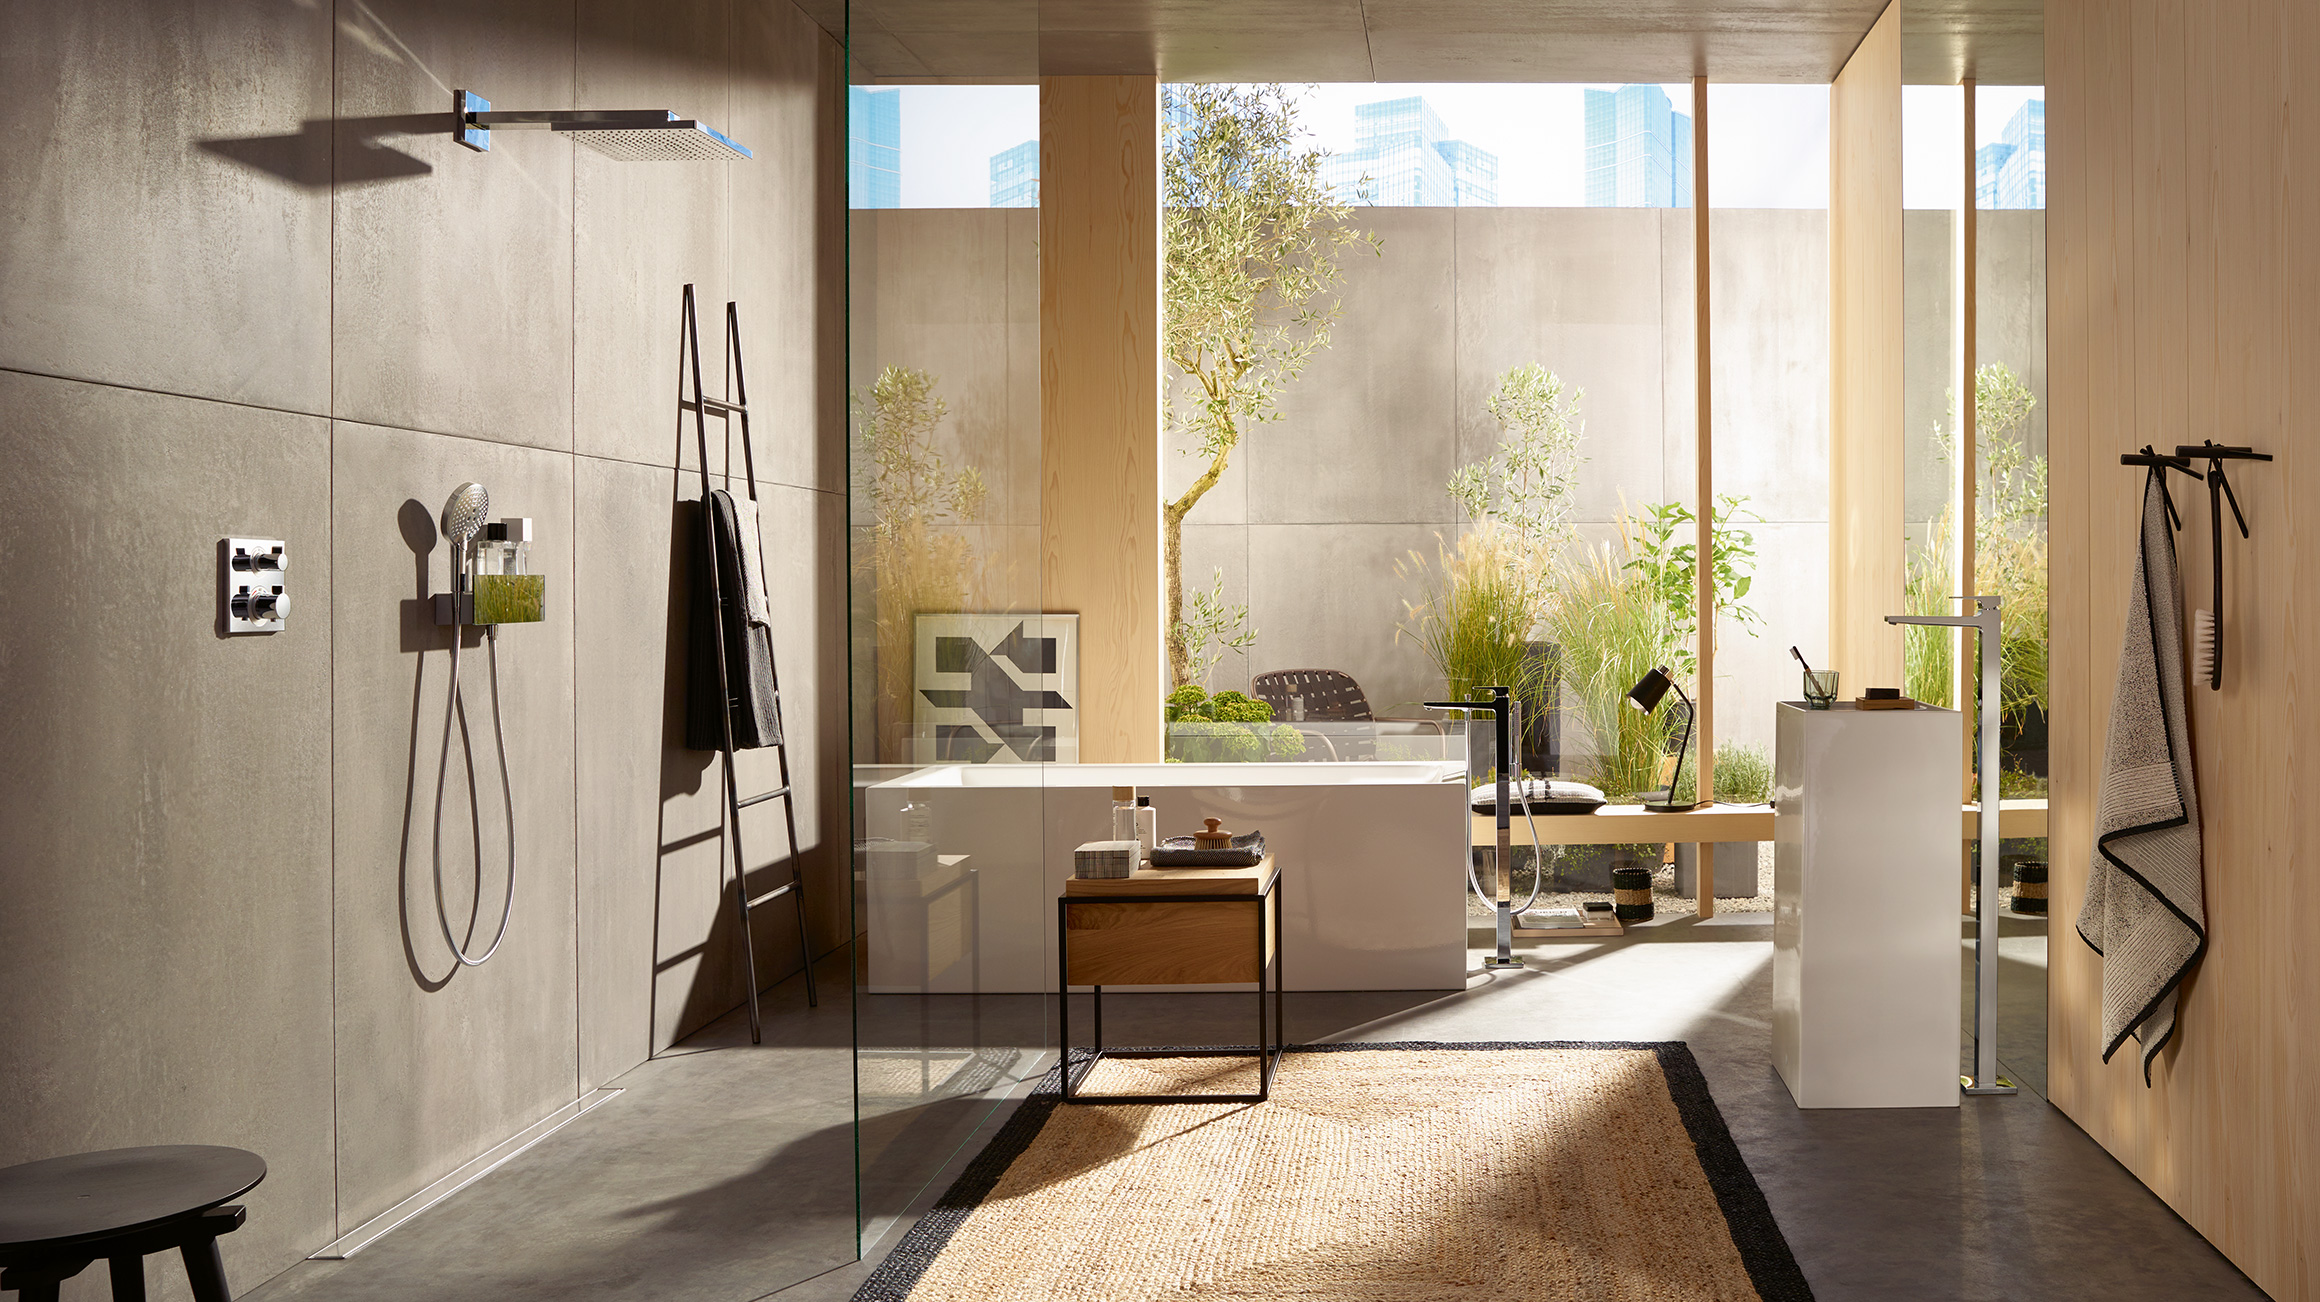 Concrete Rooms Exposed Concrete And Rough Walls In A Concrete Look Hansgrohe Int